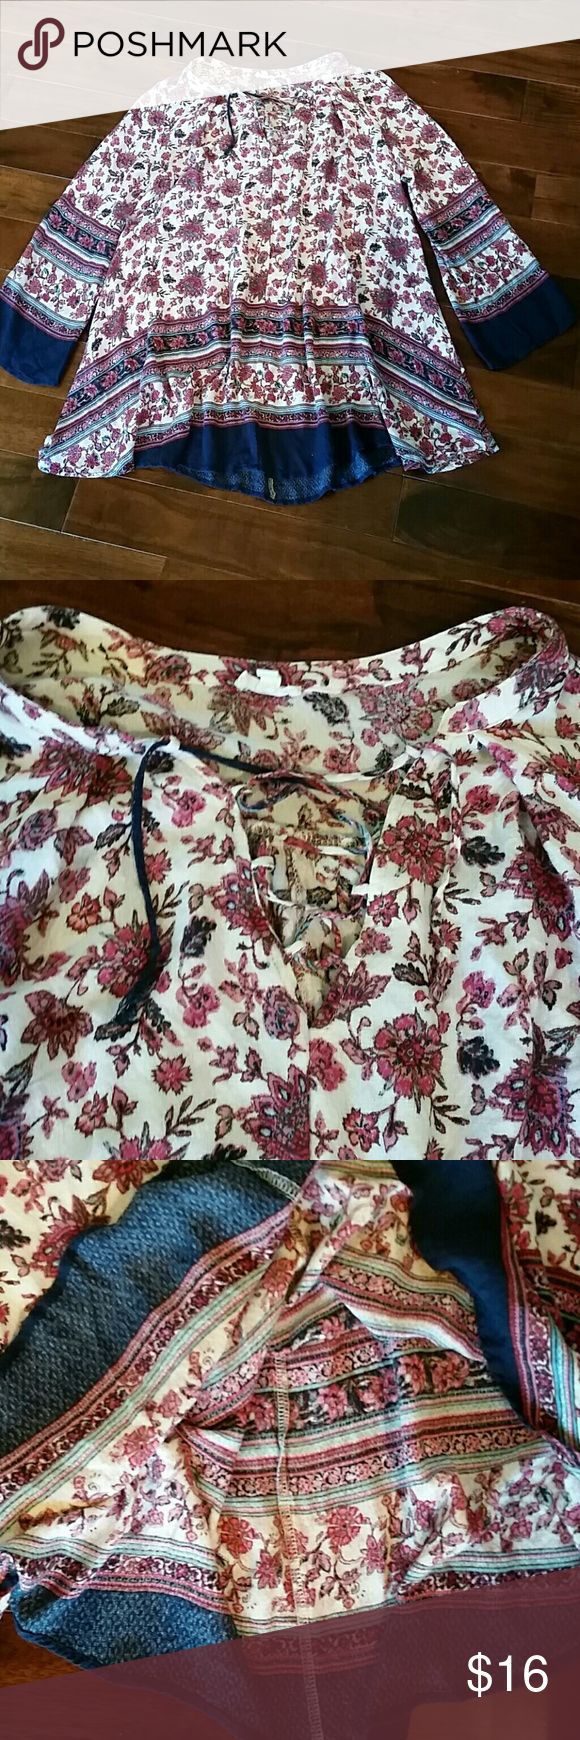 "BOHO Rayon Gauze Flowing Blouse  Sz S Armpit to armpit 25"", top to bottom 30.5"", sleeves 21"", floral print,  lace front, pinks, cream,blues, very thin and flowy en creme Tops Blouses"